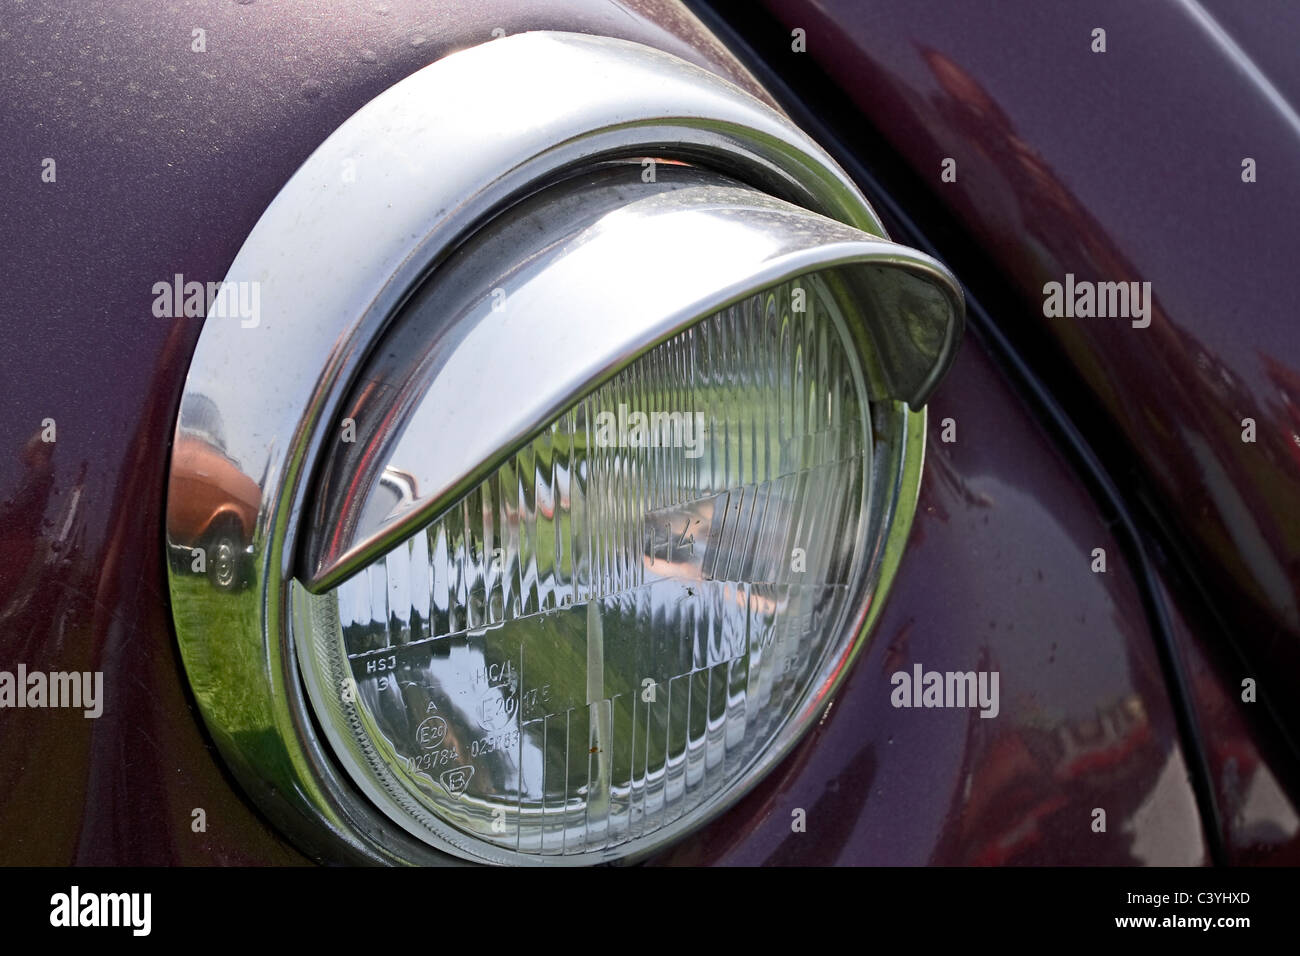 Headlight mounting on a classic VW Beetle saloon car - Stock Image